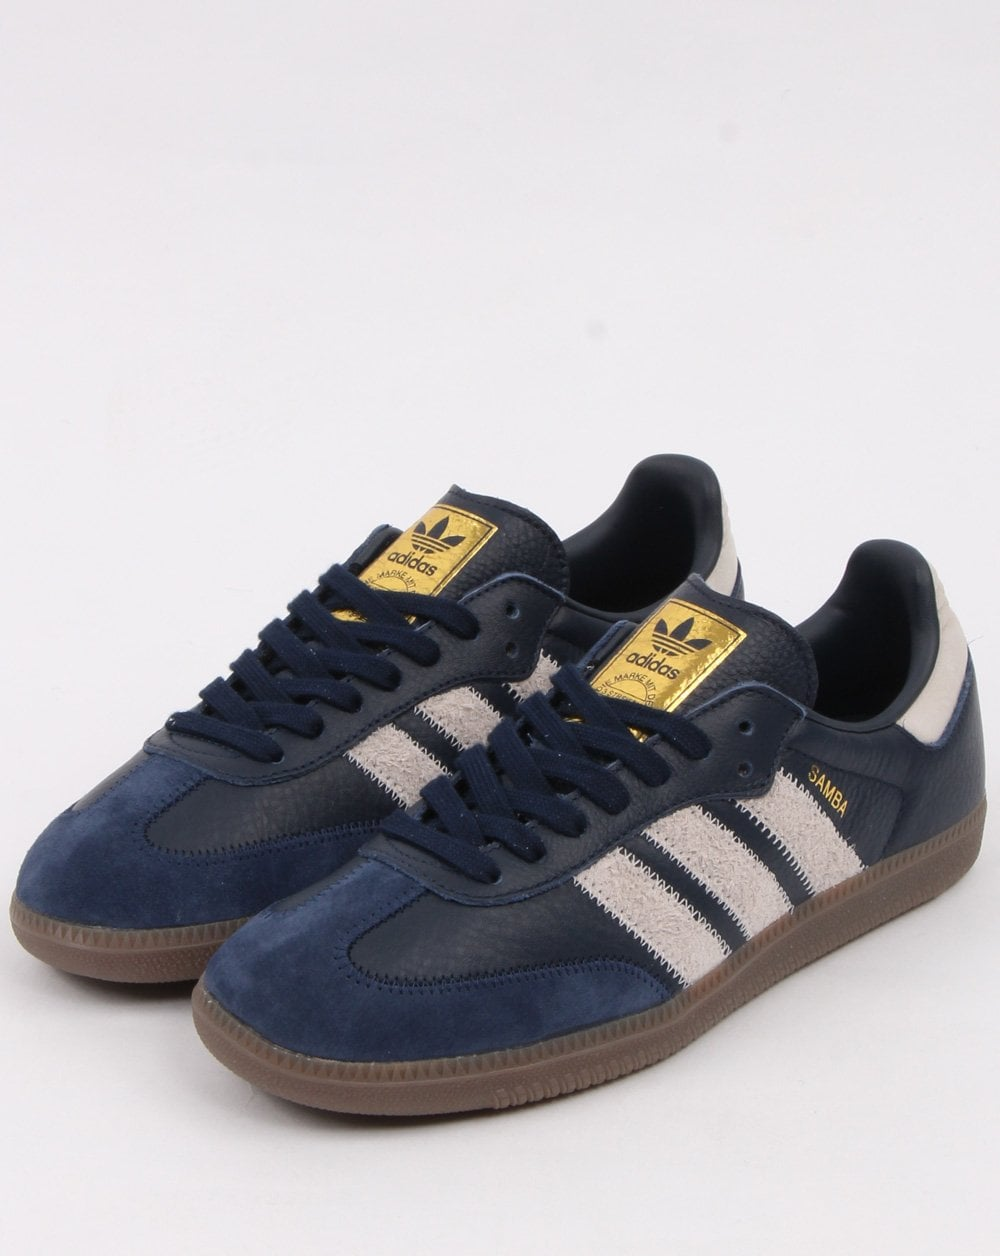 Adidas Samba Og Ft Trainers Navy Grey Adidas At 80s Casual Classics